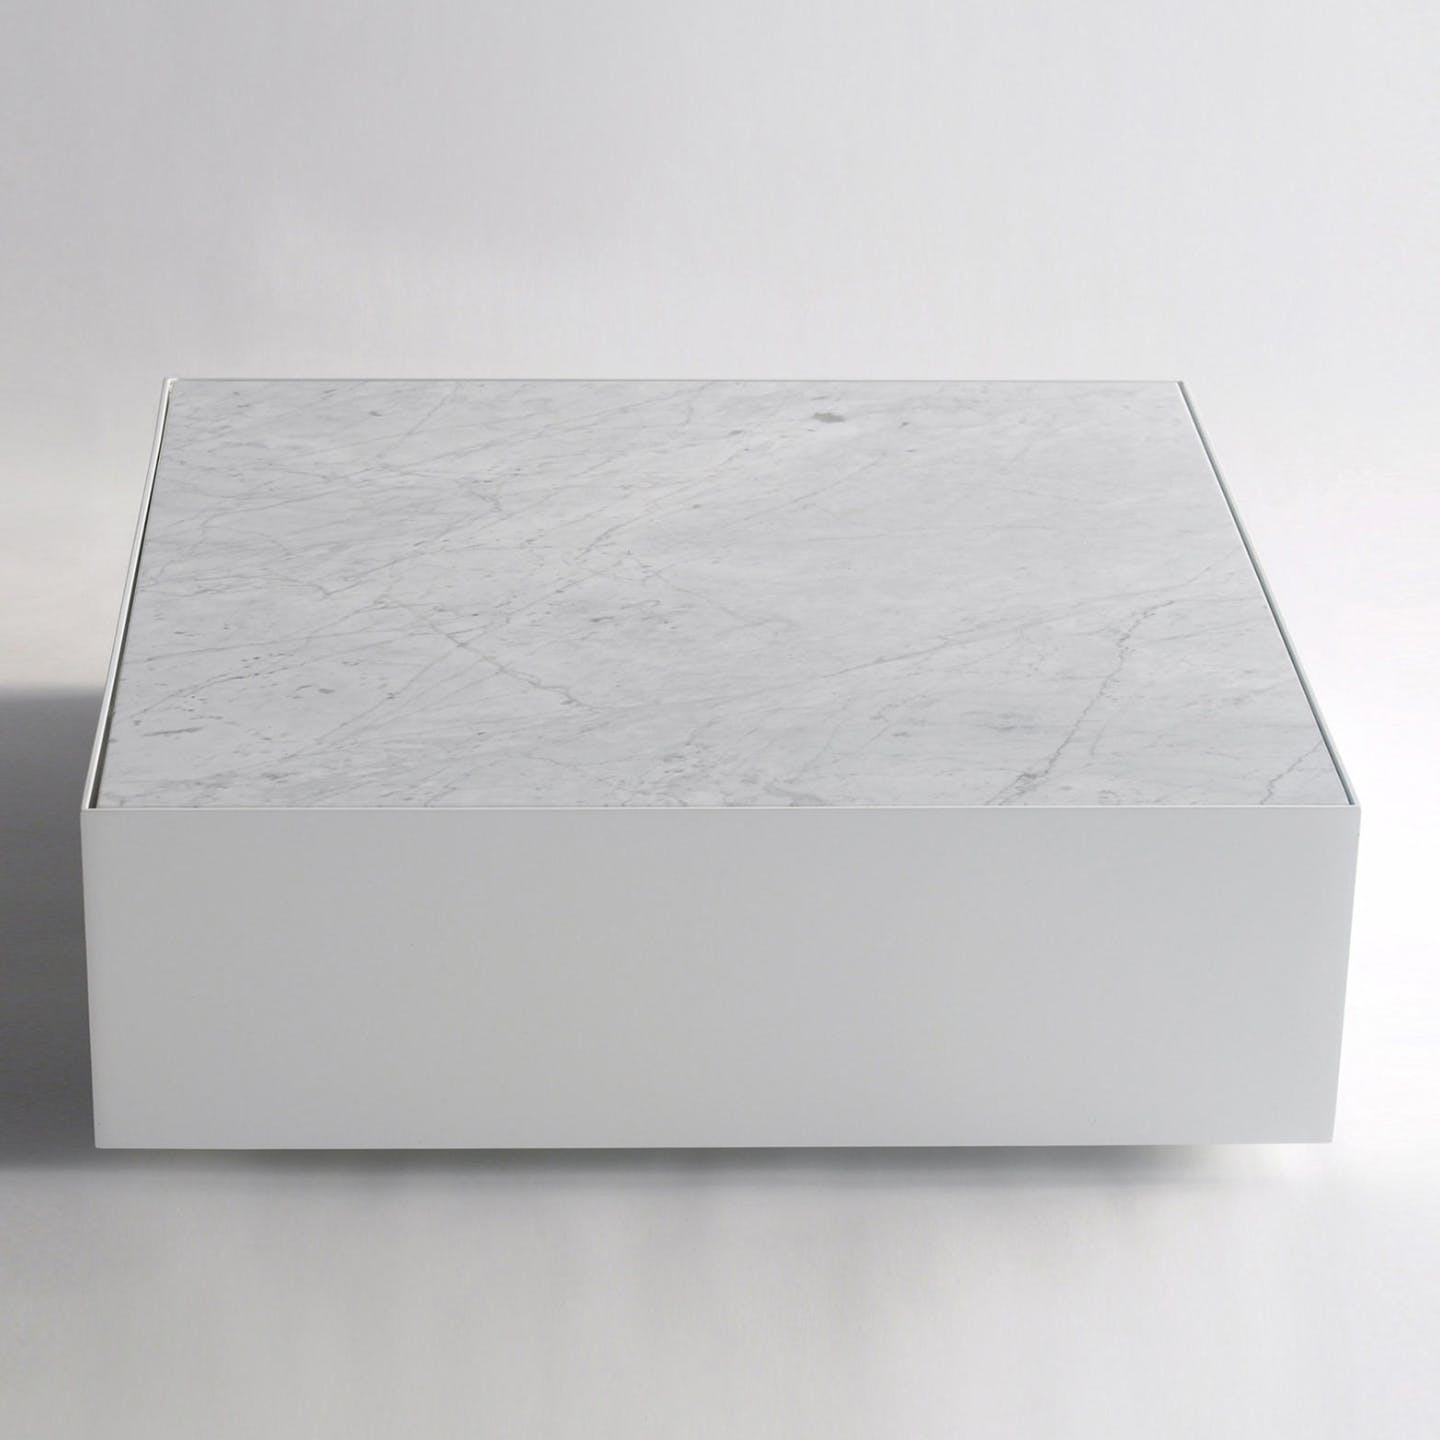 Phase Design Ballot Box Table Marble Front Haute Living